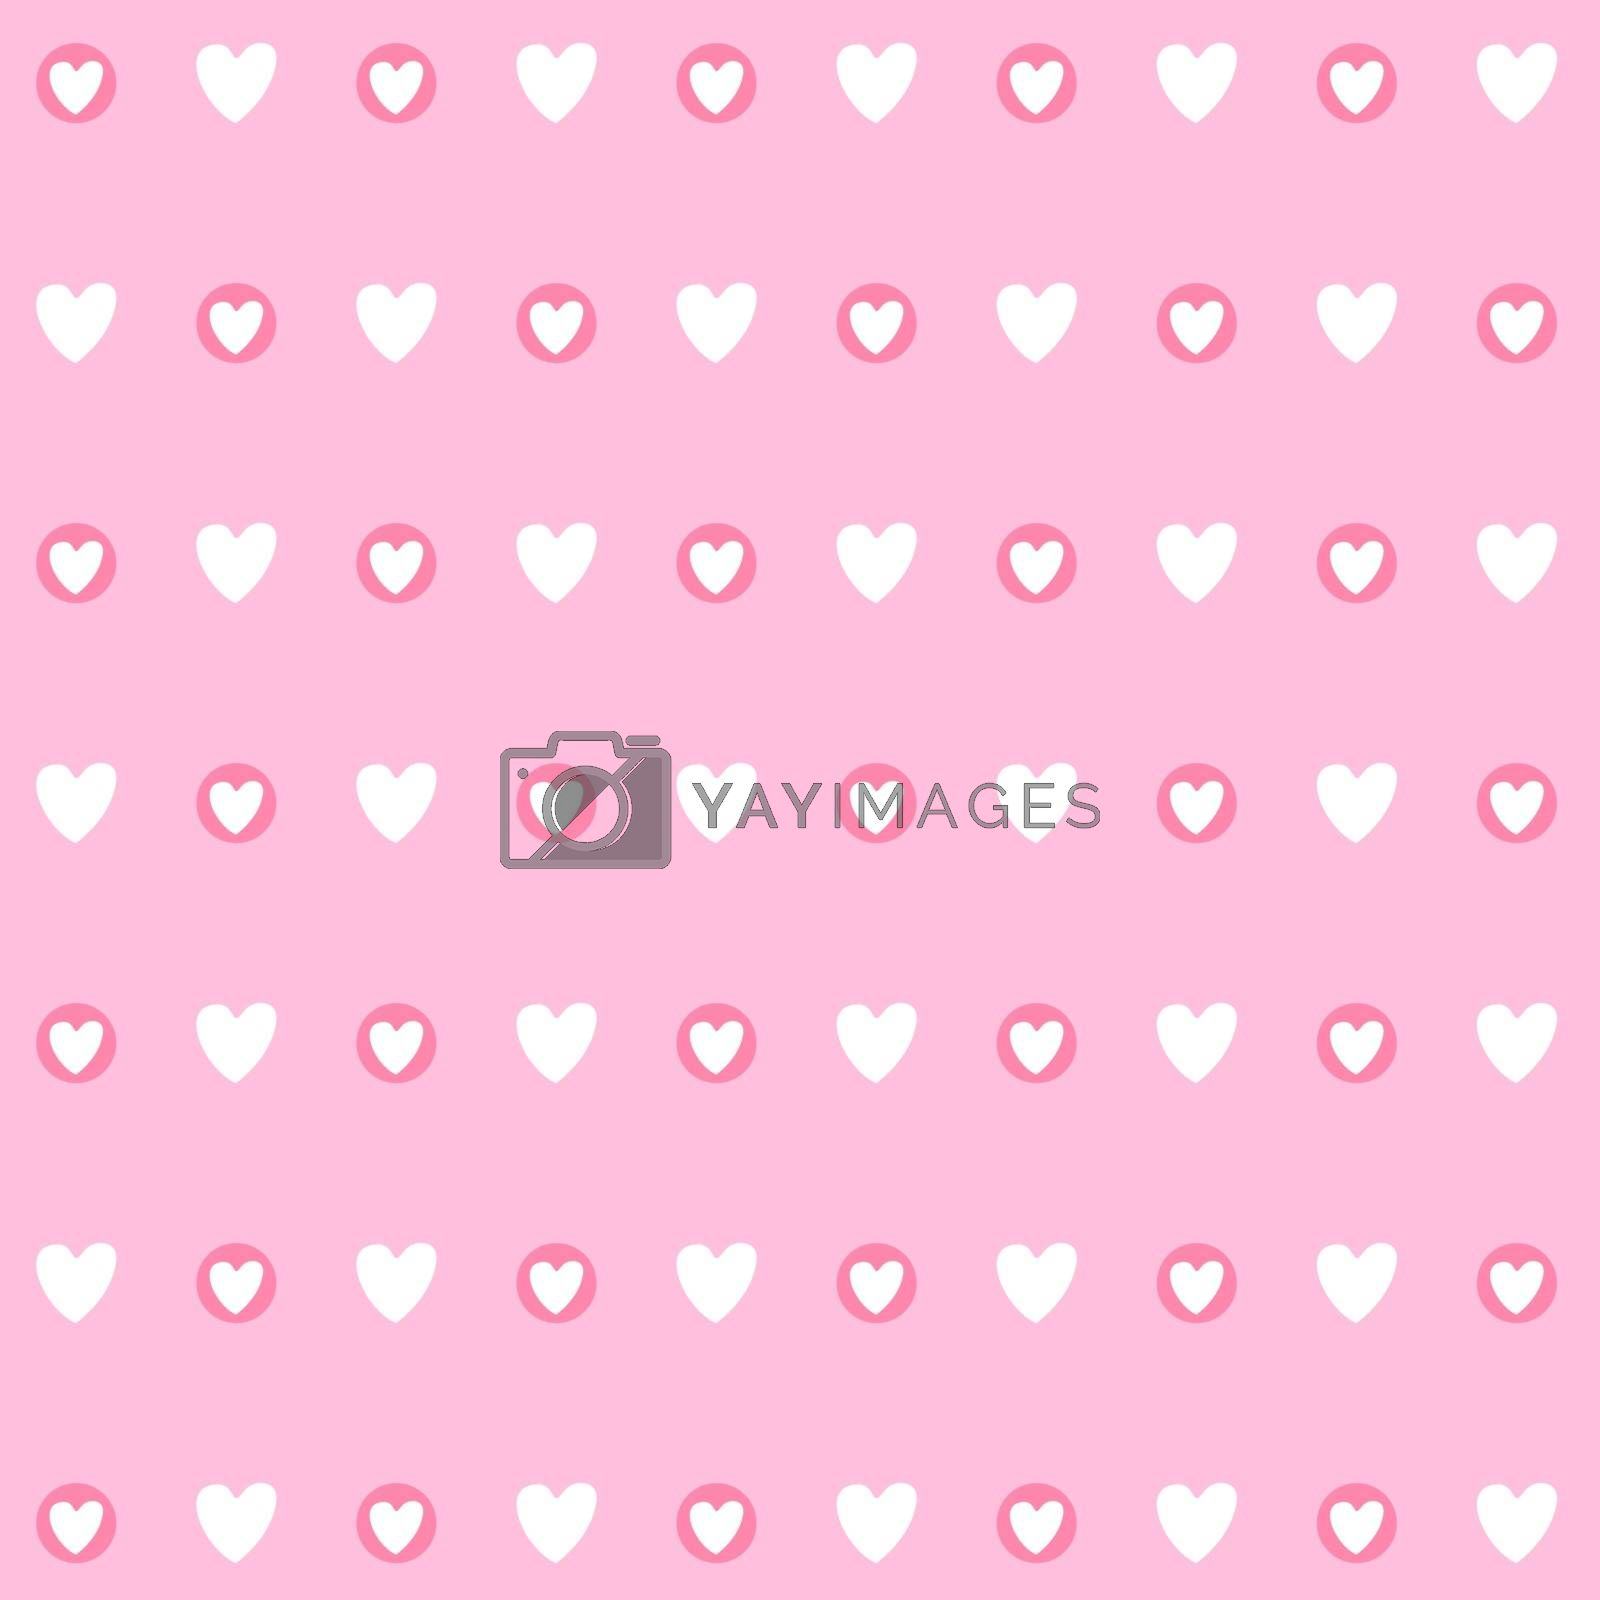 Hand drawn pink hearts seamless vector pattern background. Pattern swatch included.